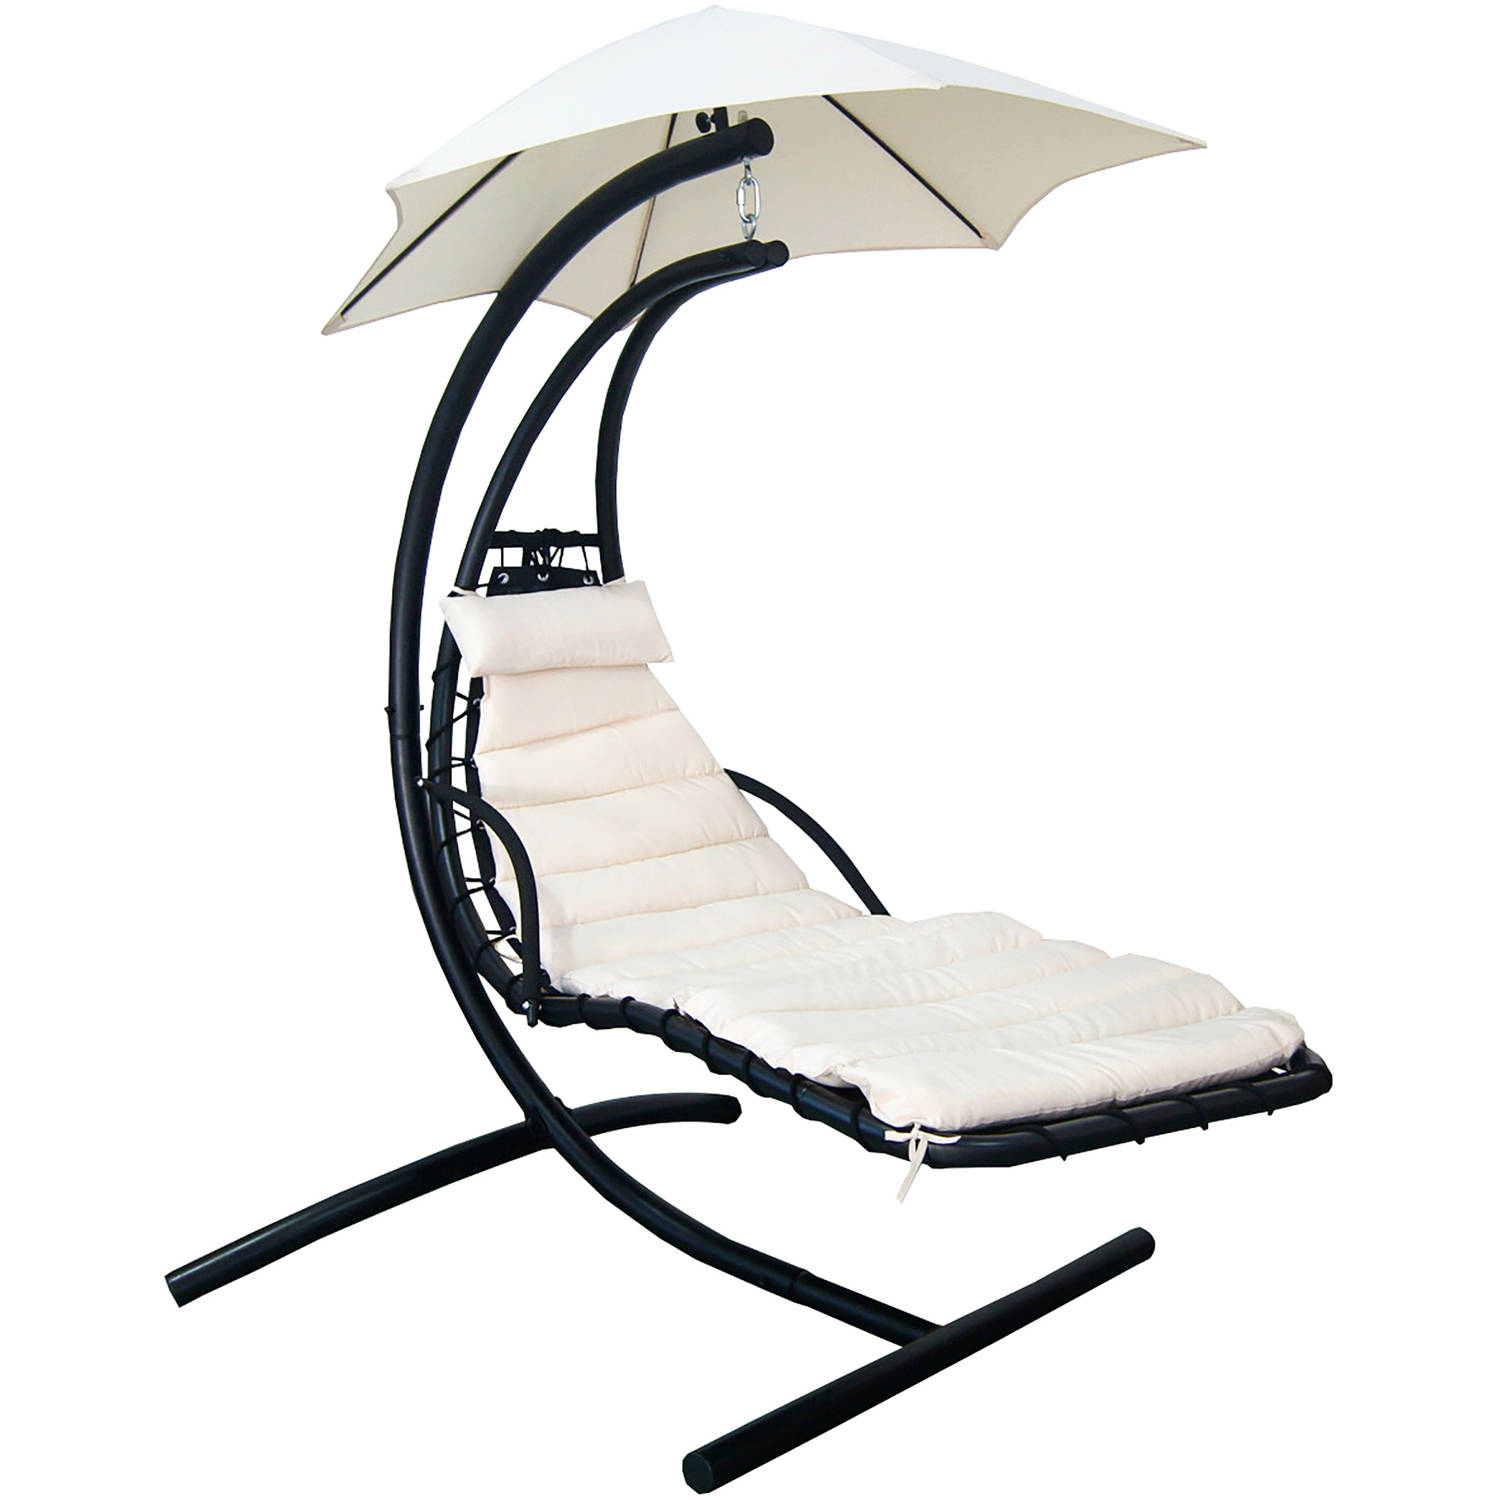 Blue Wave Island Retreat Hanging Lounge with Shade Canopy Terra